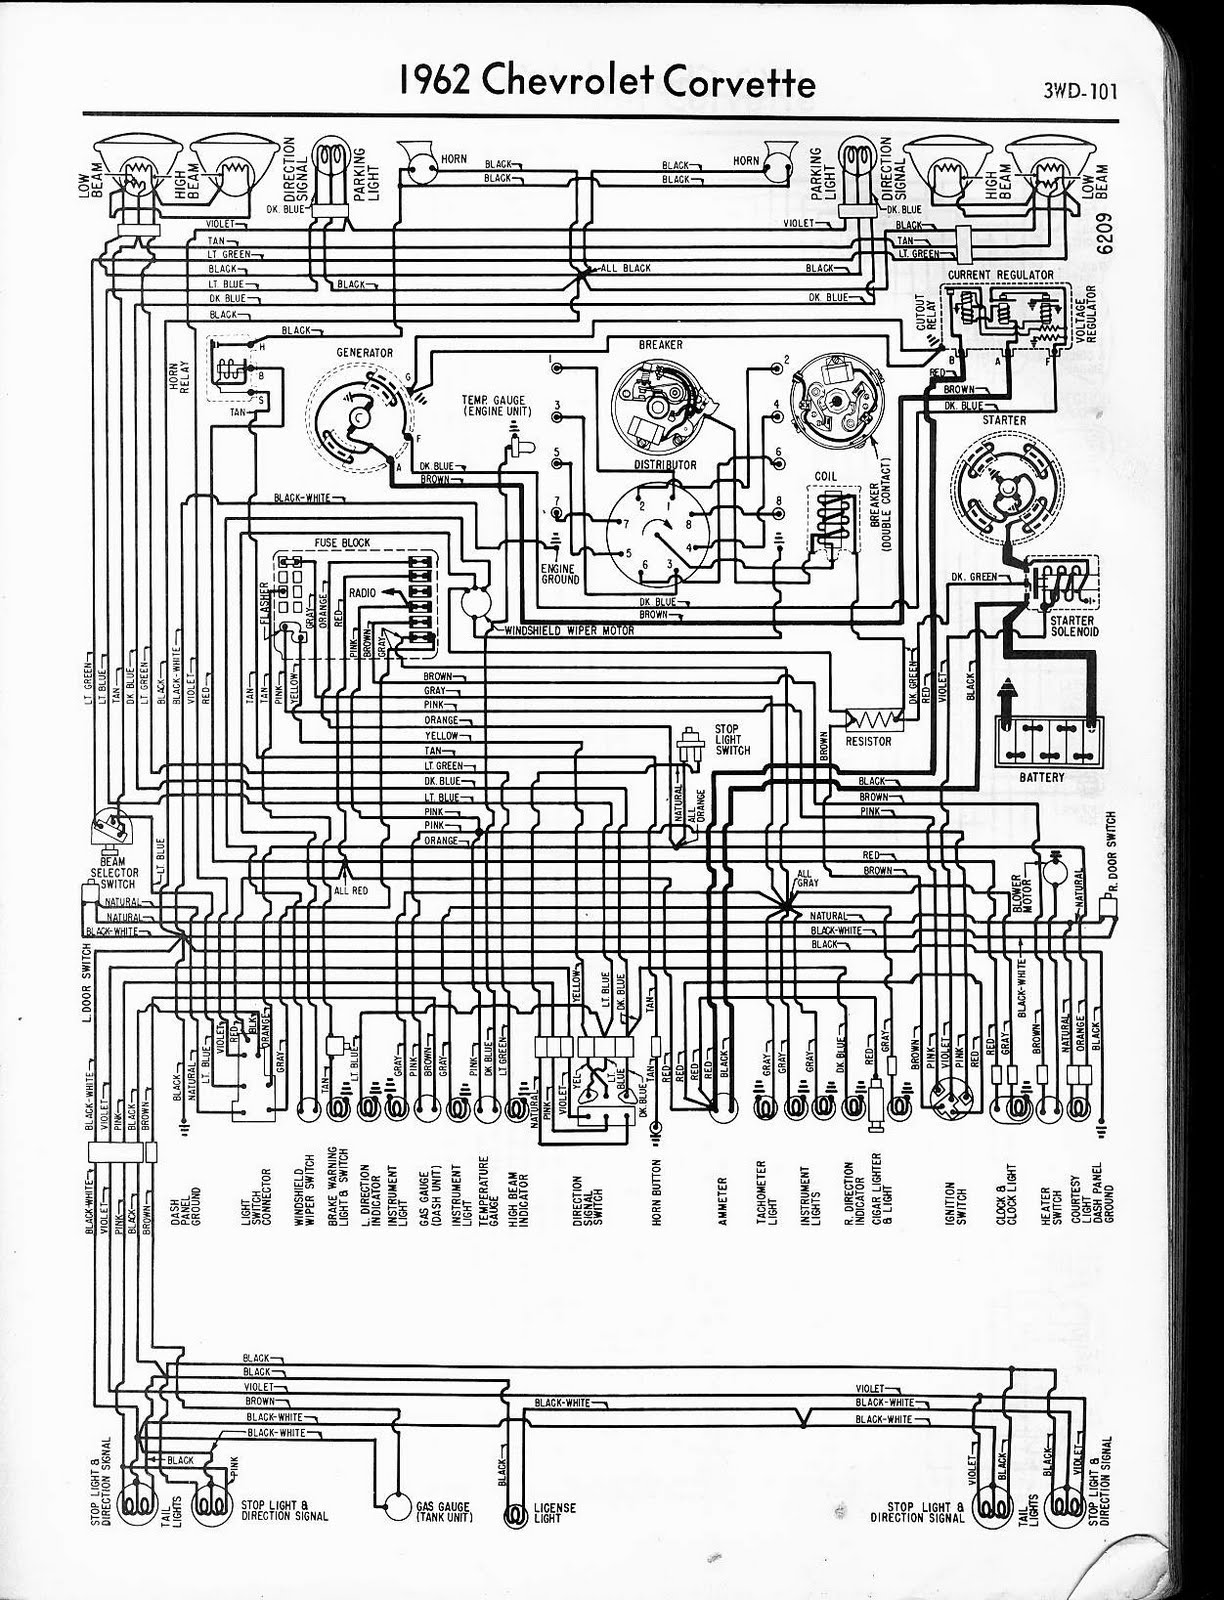 1962 Chevy Wiring Harness Diagram Diagrams 2002 Silverado Engine Free Auto Chevrolet Corvette 55